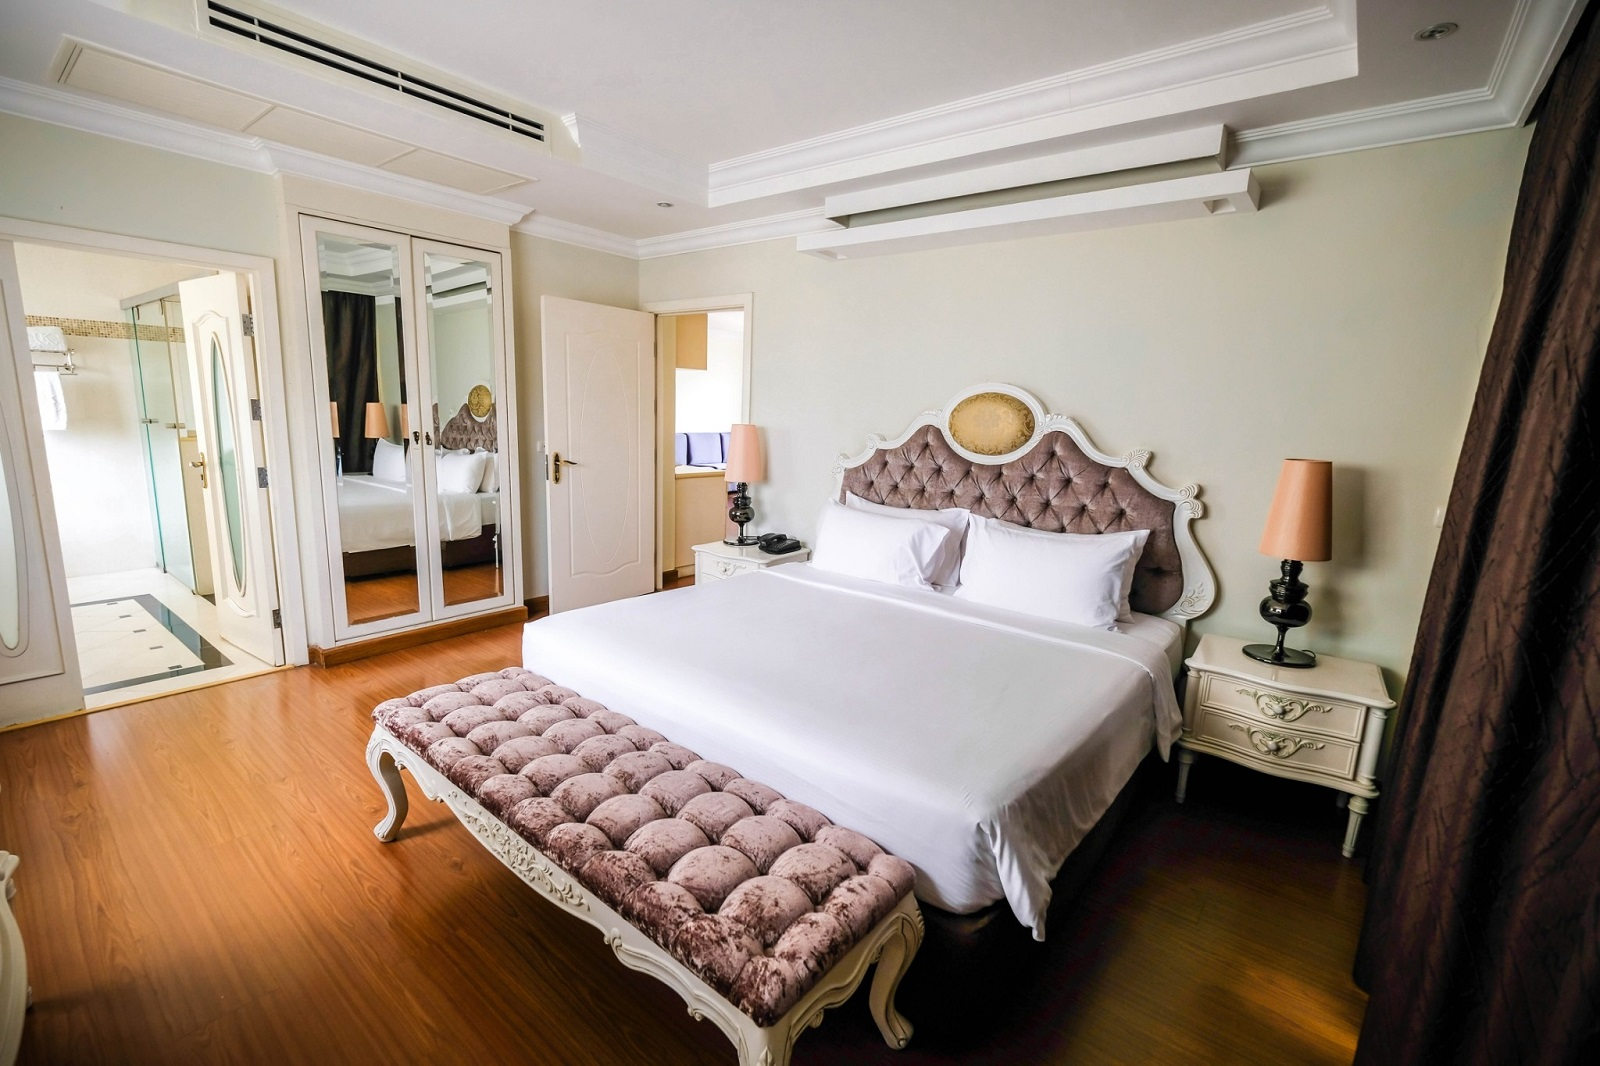 Two Bedroom Suite 120 Sqm Lk Miracle Suite Lk Group Pattaya Hotels Welcome To Lk Group Definitely Exclusive Hotels Resorts In Pattaya Thailand